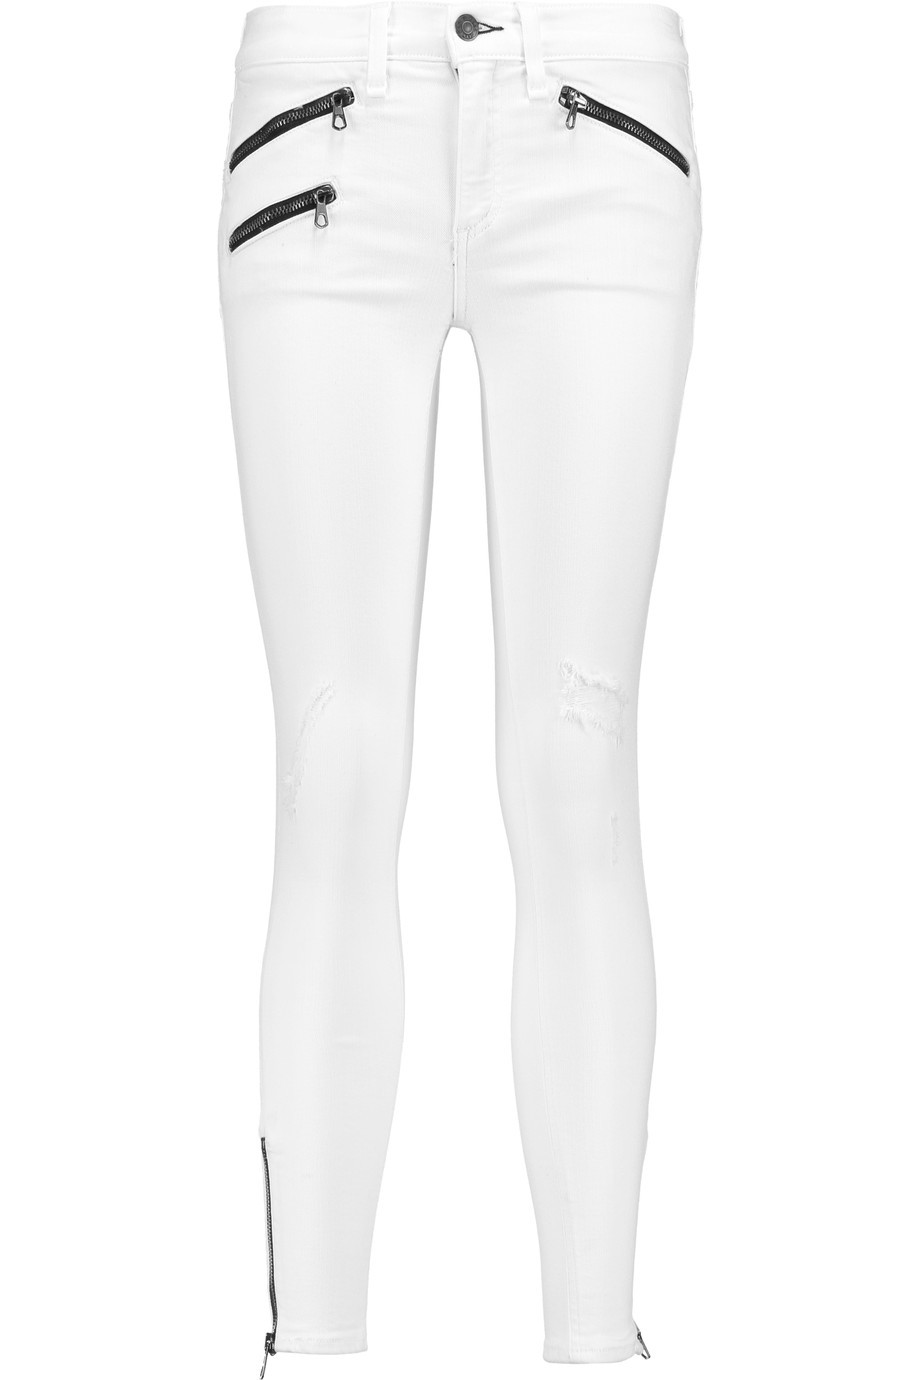 Distressed Low Rise Skinny Jeans White - style: skinny leg; length: standard; pattern: plain; waist: low rise; predominant colour: white; occasions: casual, evening, creative work; fibres: cotton - stretch; texture group: denim; pattern type: fabric; embellishment: zips; season: s/s 2016; wardrobe: highlight; embellishment location: hem